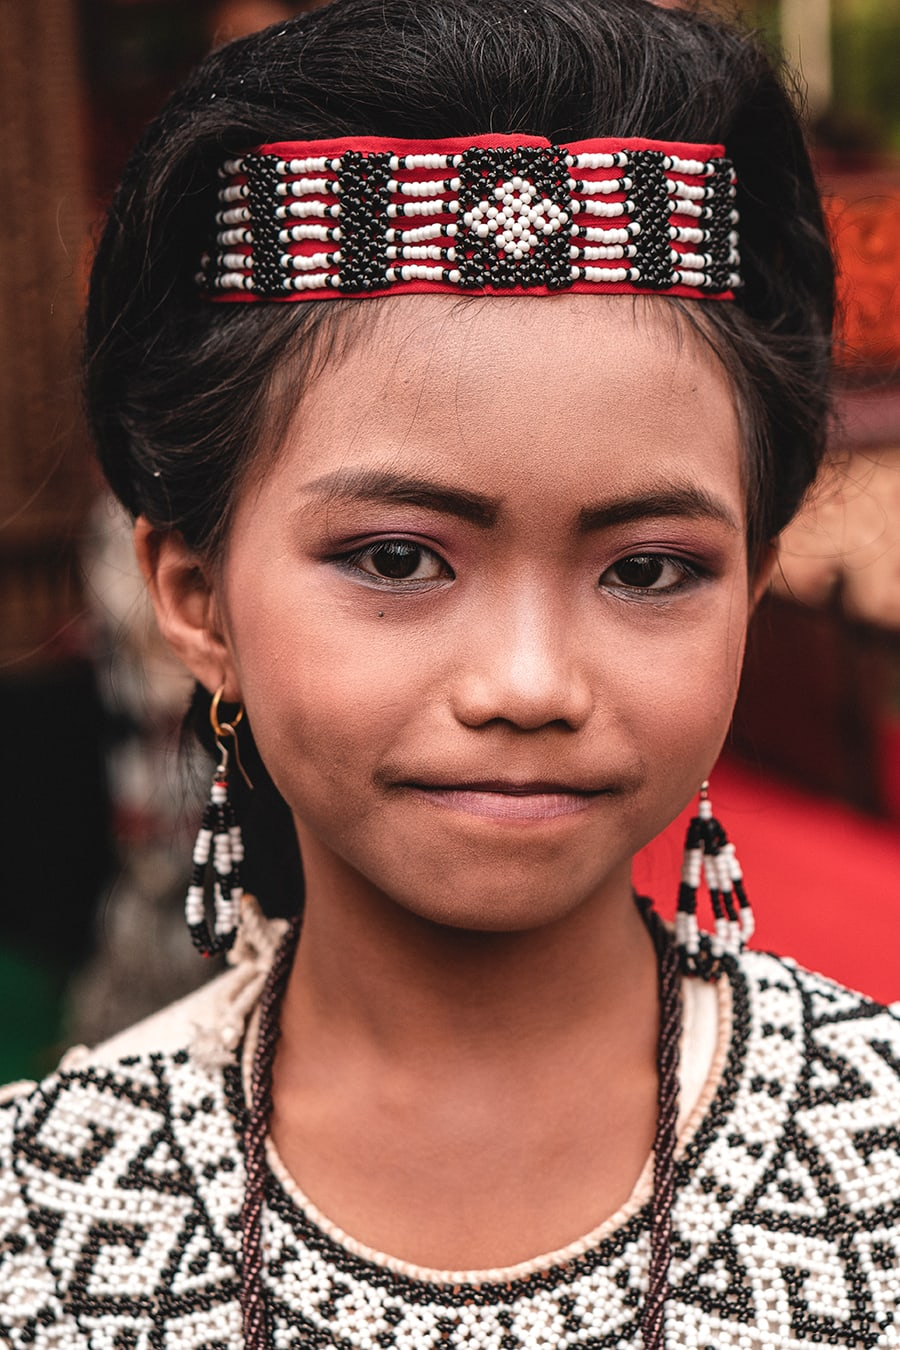 Young girl dressed in traditional attire at a Torajan funeral ceremony in Indonesia.